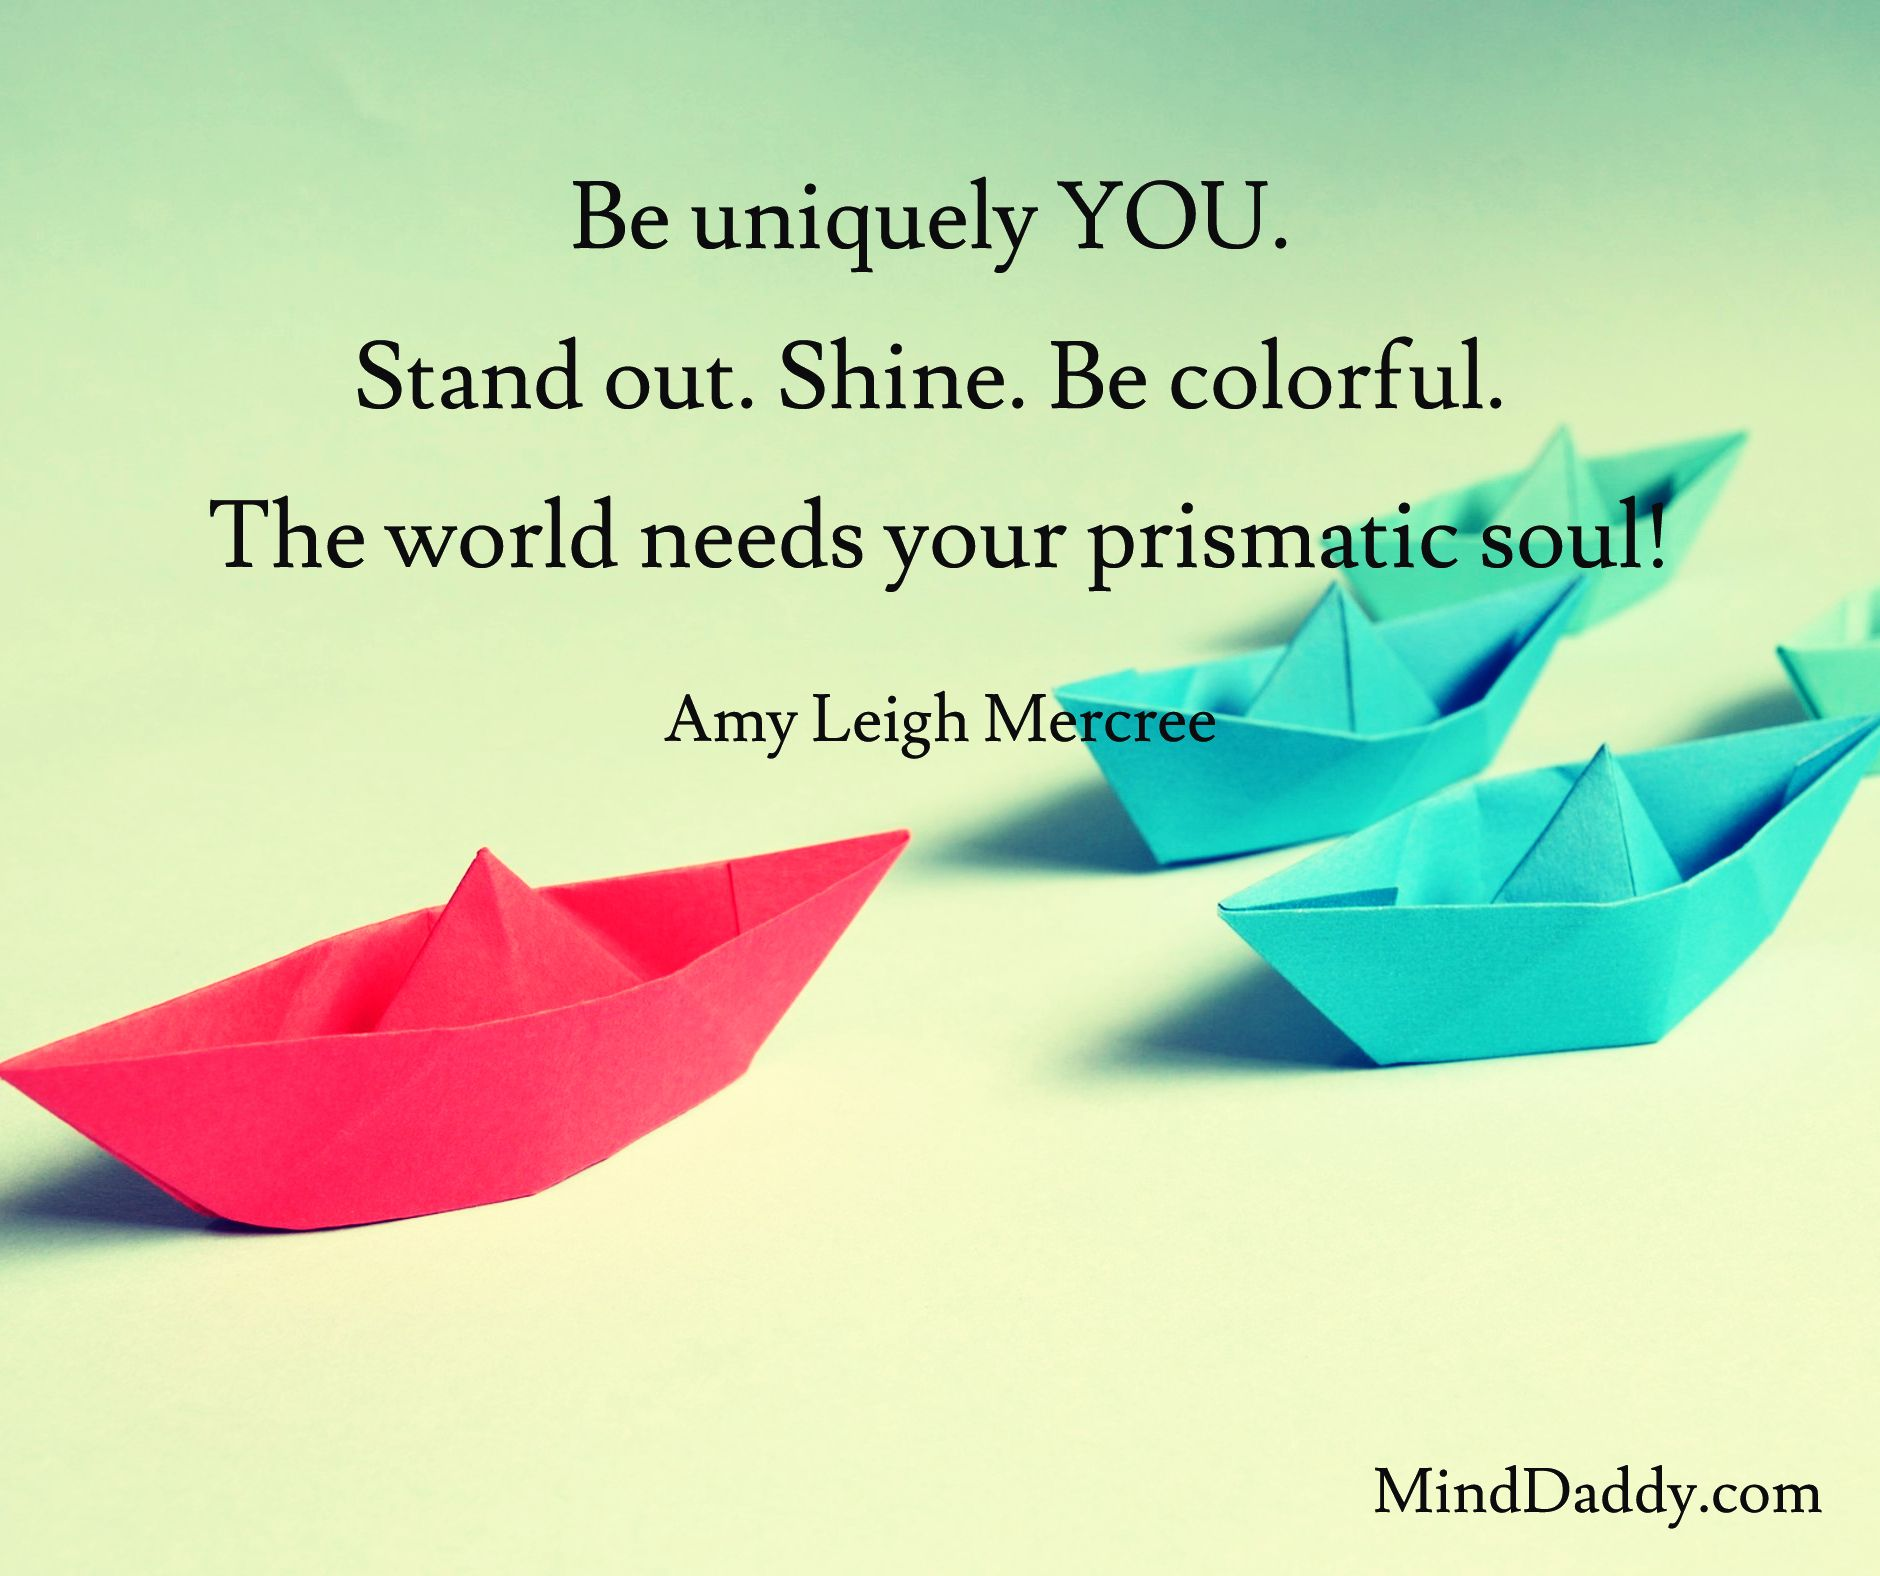 Amy Leigh Mercree Be Uniquely You Stand Out Shine Be Colorful The World Needs Your Prismatic Soul Minddaddy Com World Need Prismatic Need You